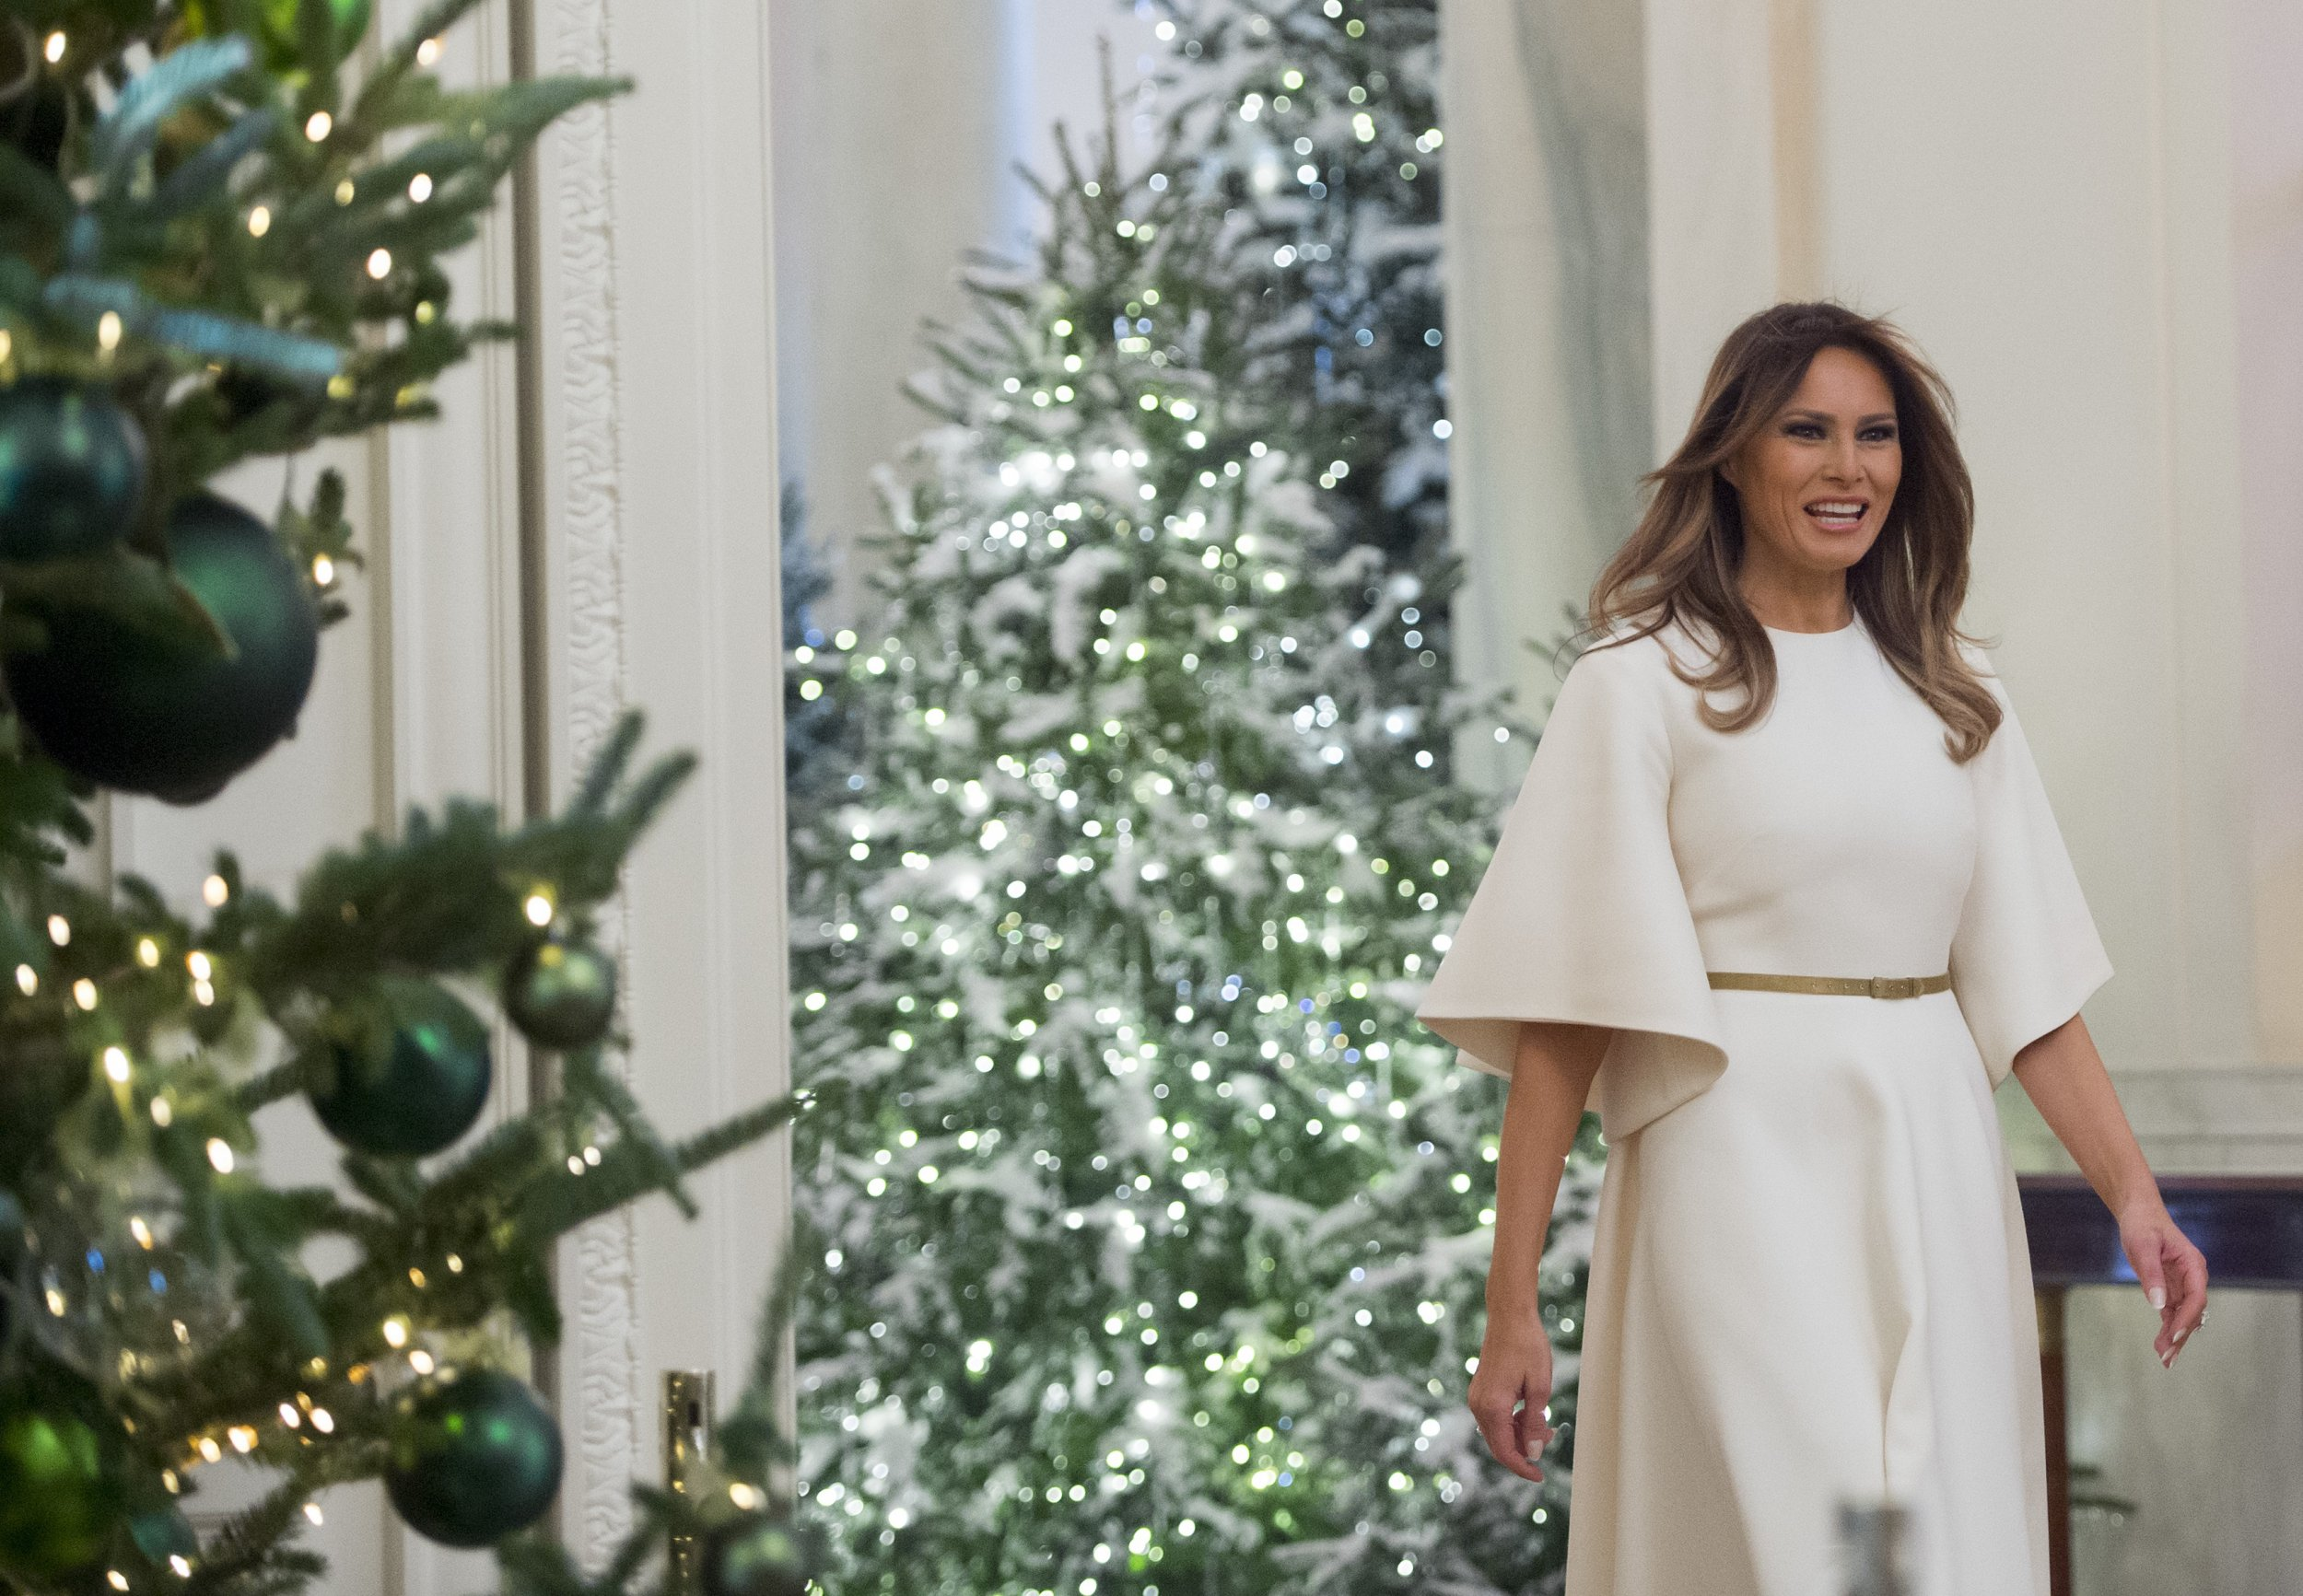 Melania Trump White House Christmas.Melania Trump S Christmas Decorations At The White House